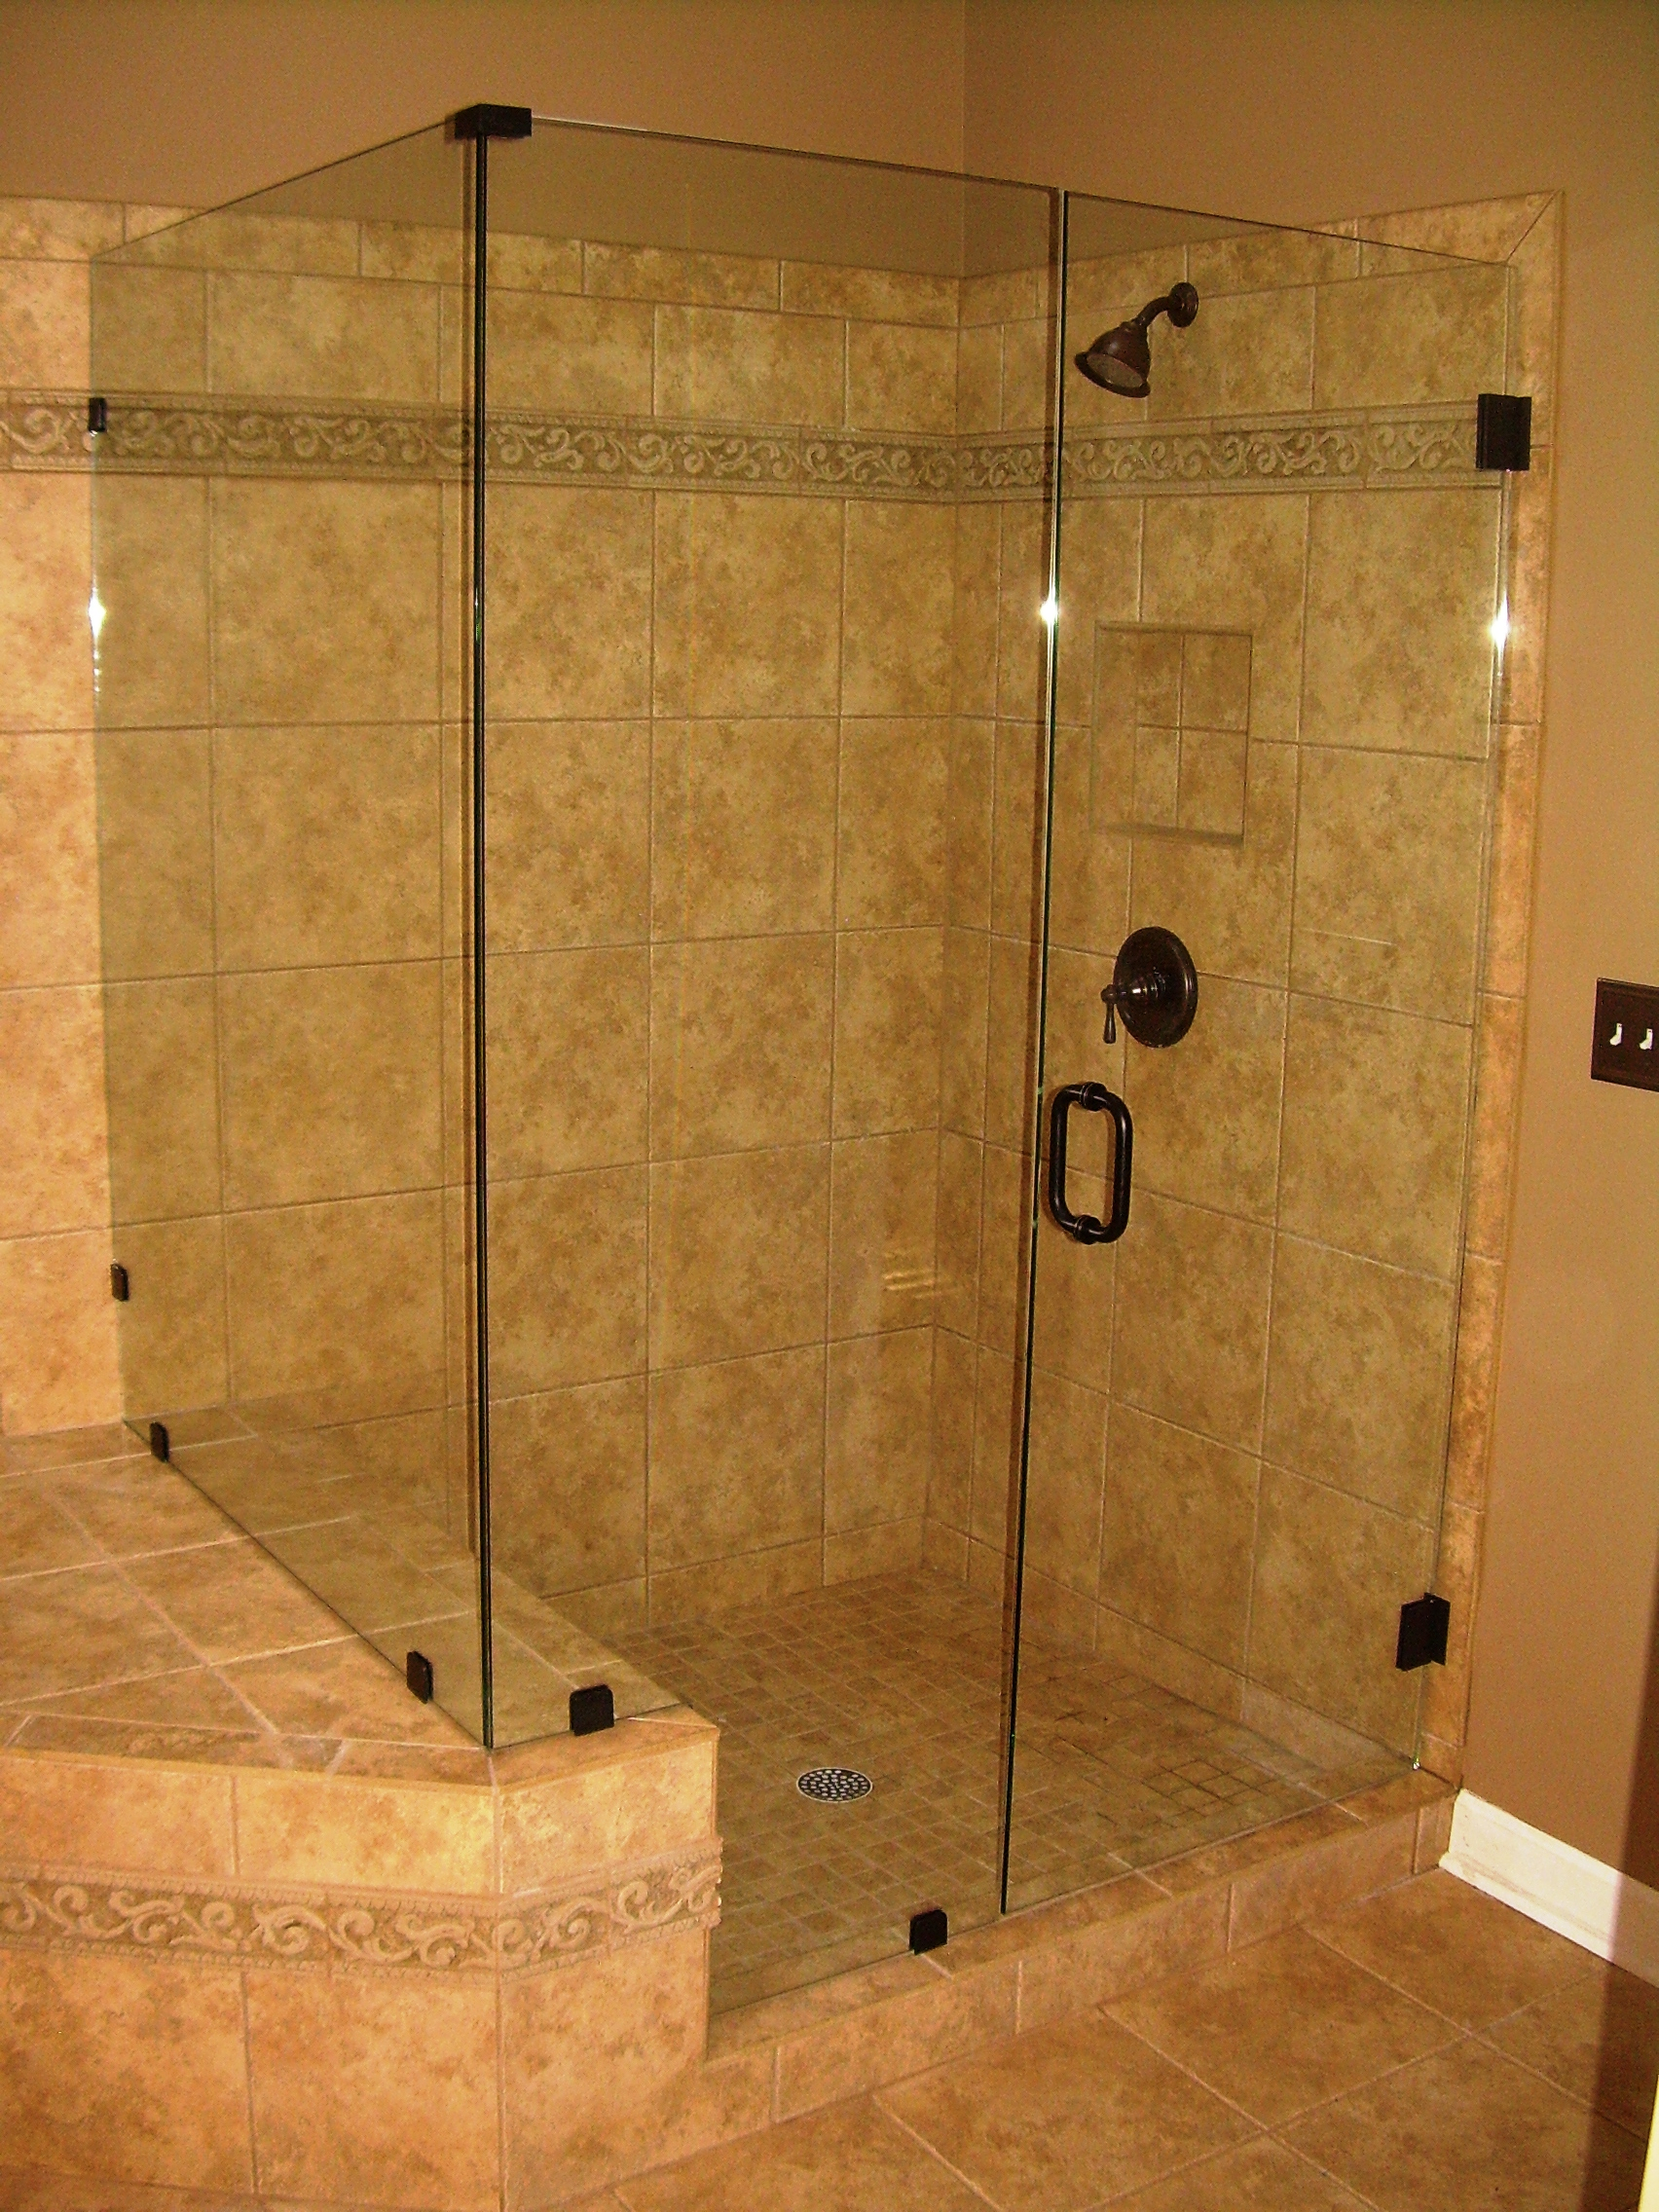 How to clean glass shower doors jenna pope writes how to clean glass shower doors frameless shower enclosures design decorating 101 planetlyrics Images